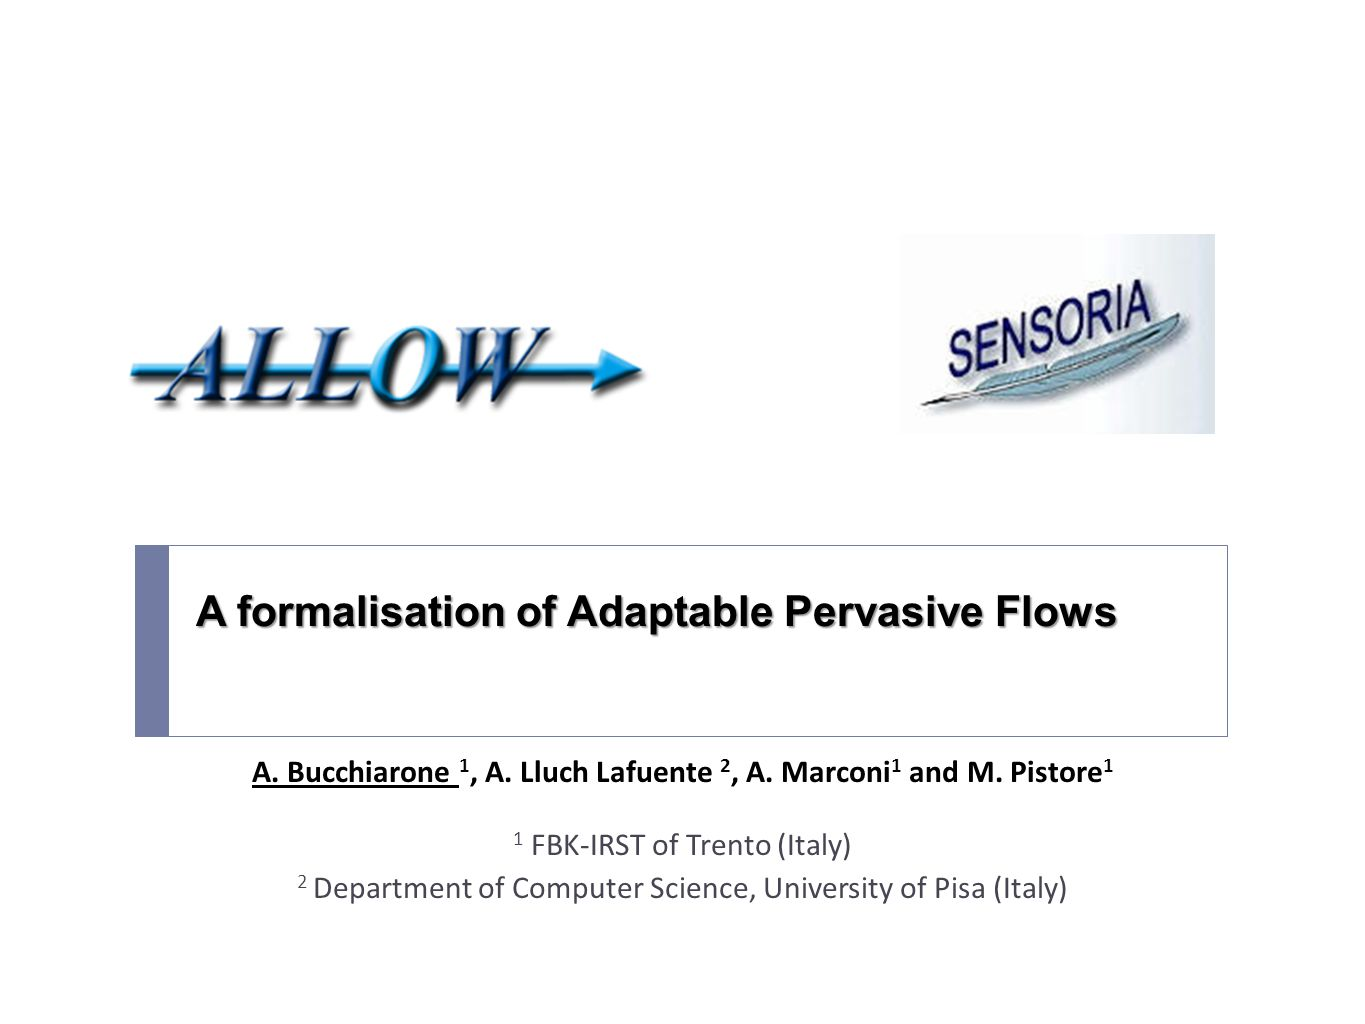 A formalisation of Adaptable Pervasive Flows A. Bucchiarone 1, A.